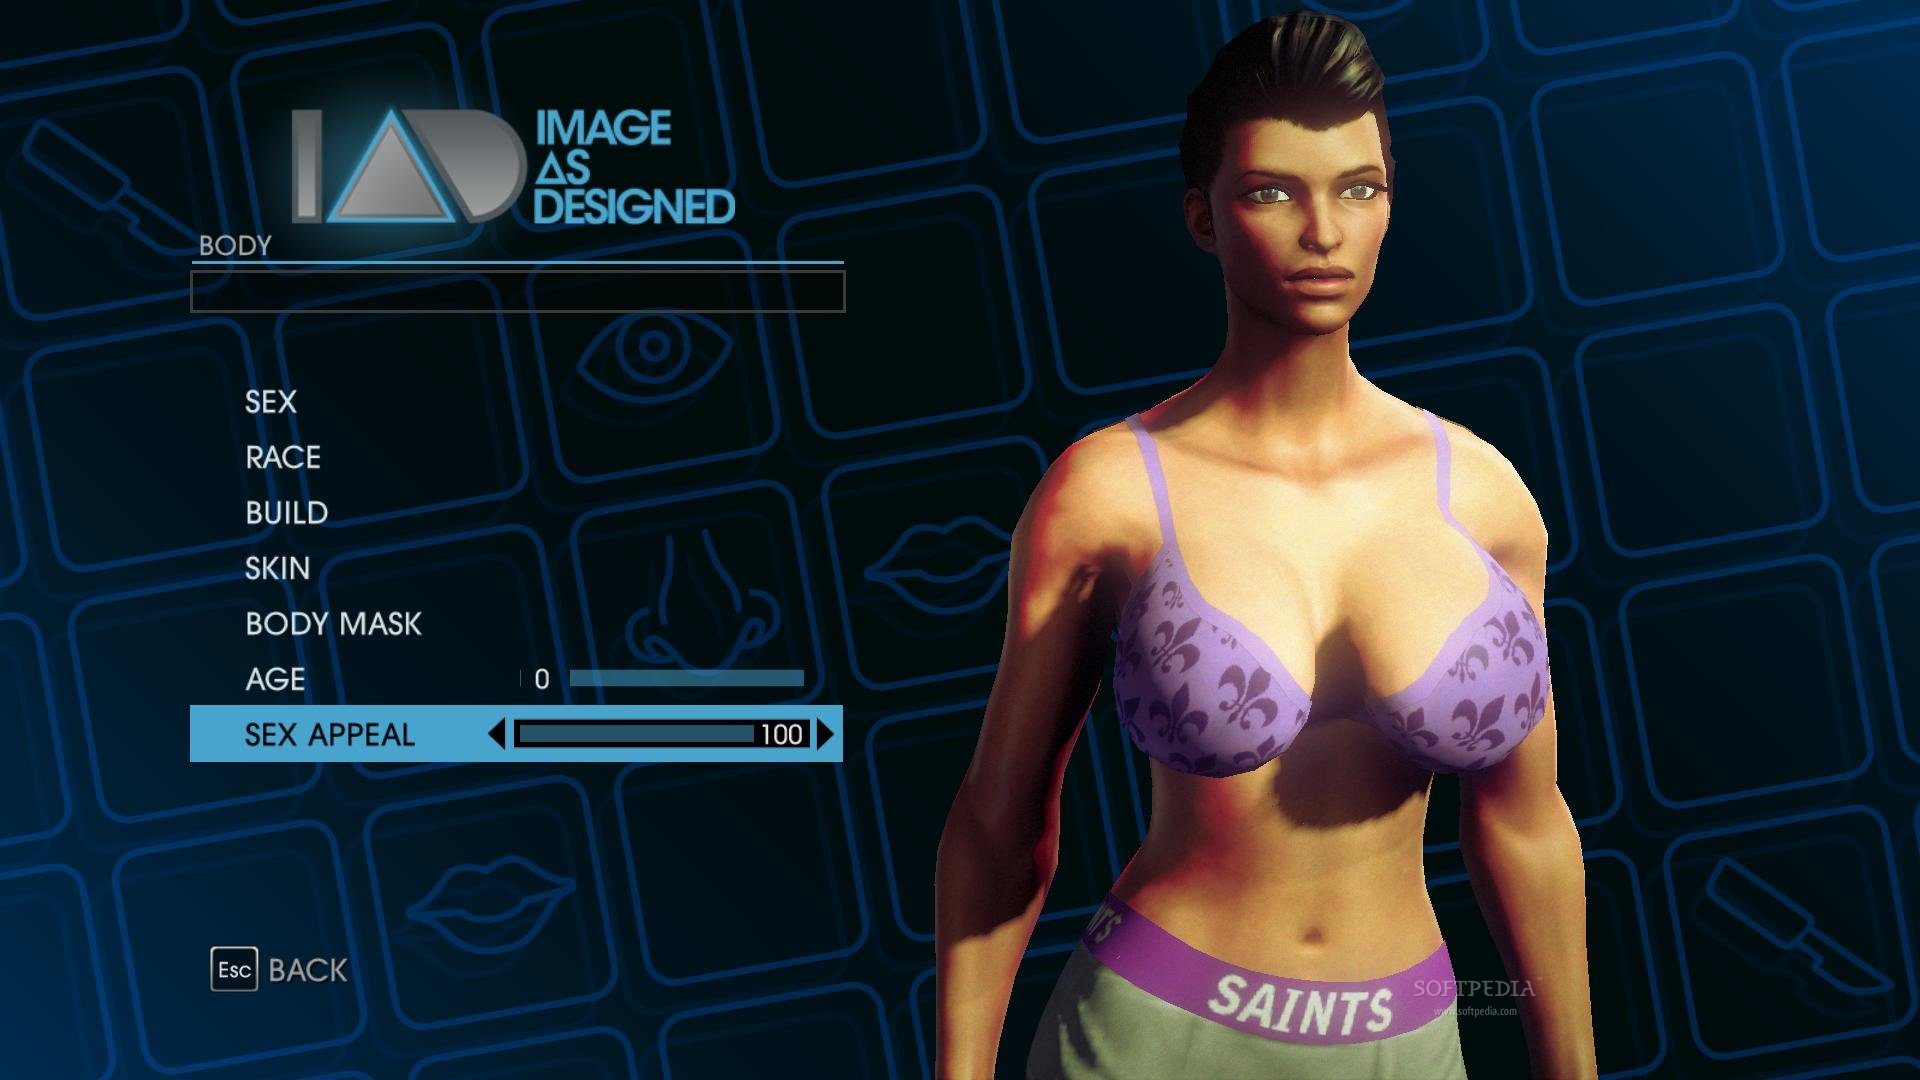 Saints row 3d sex simulation erotic naughty girl